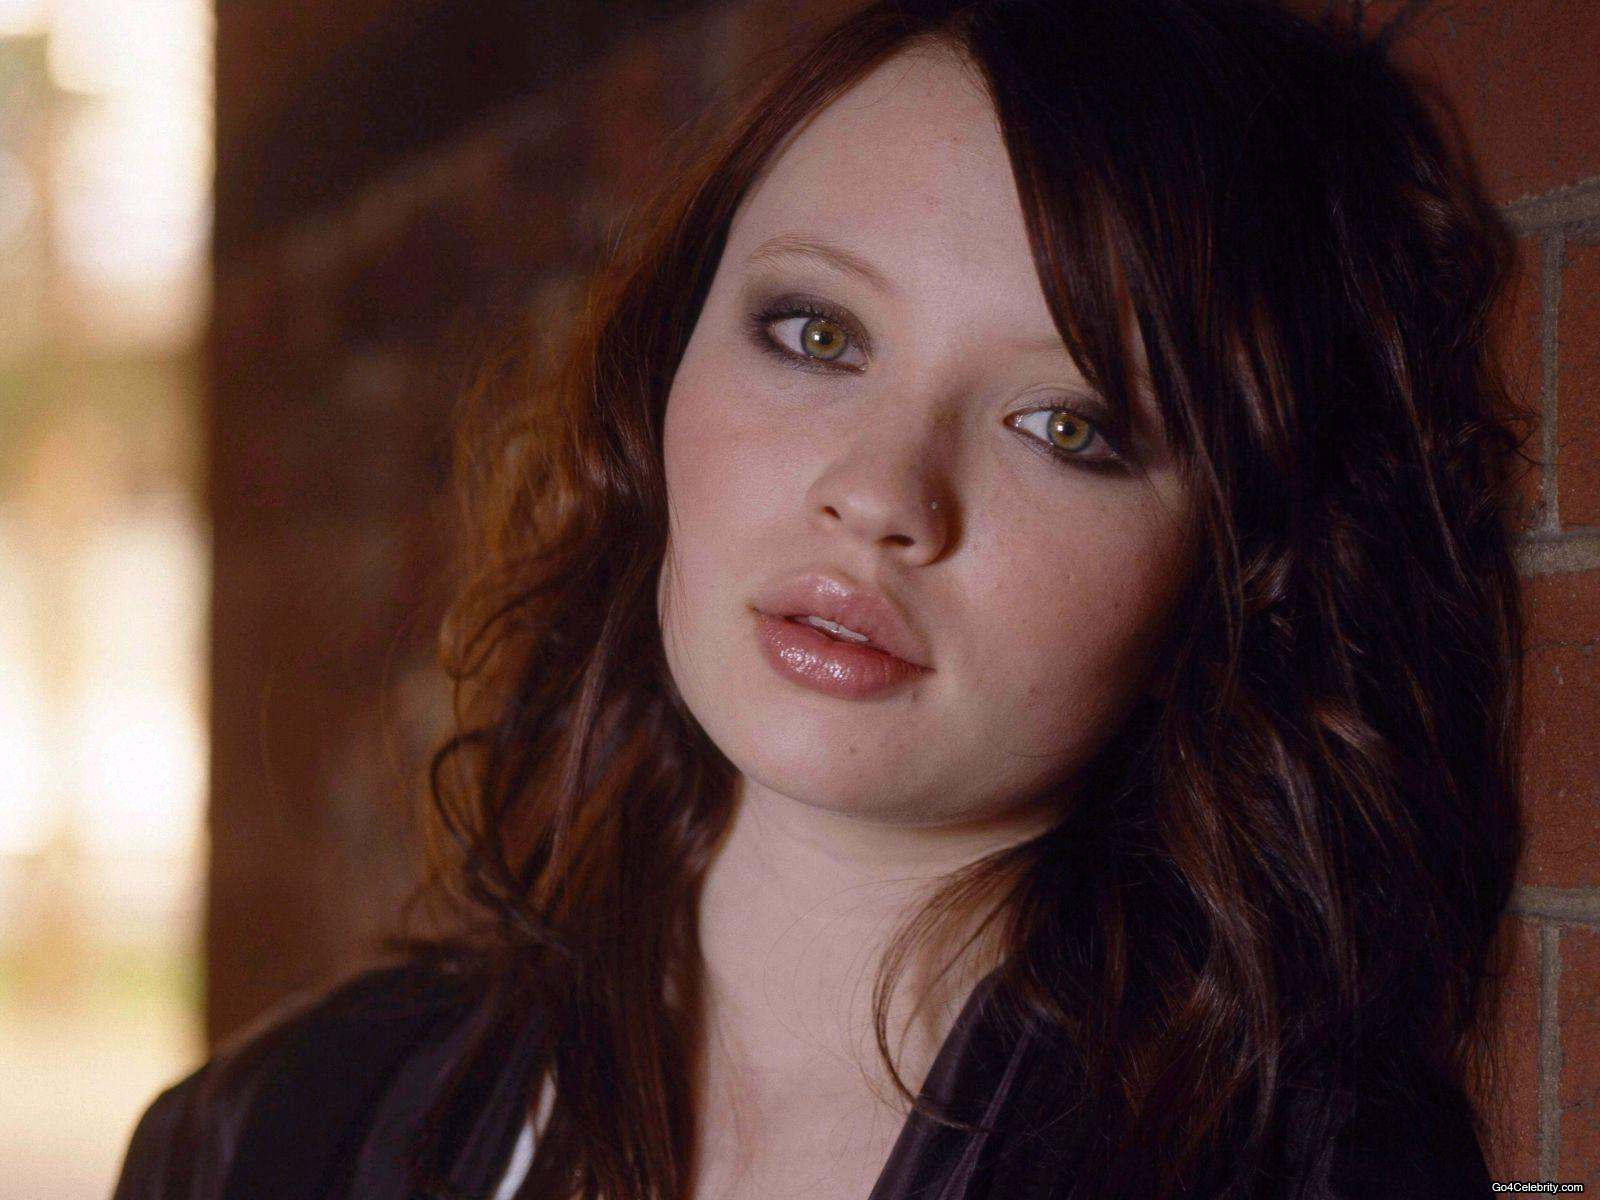 Emily Browning has natural big and perfect shaped lips